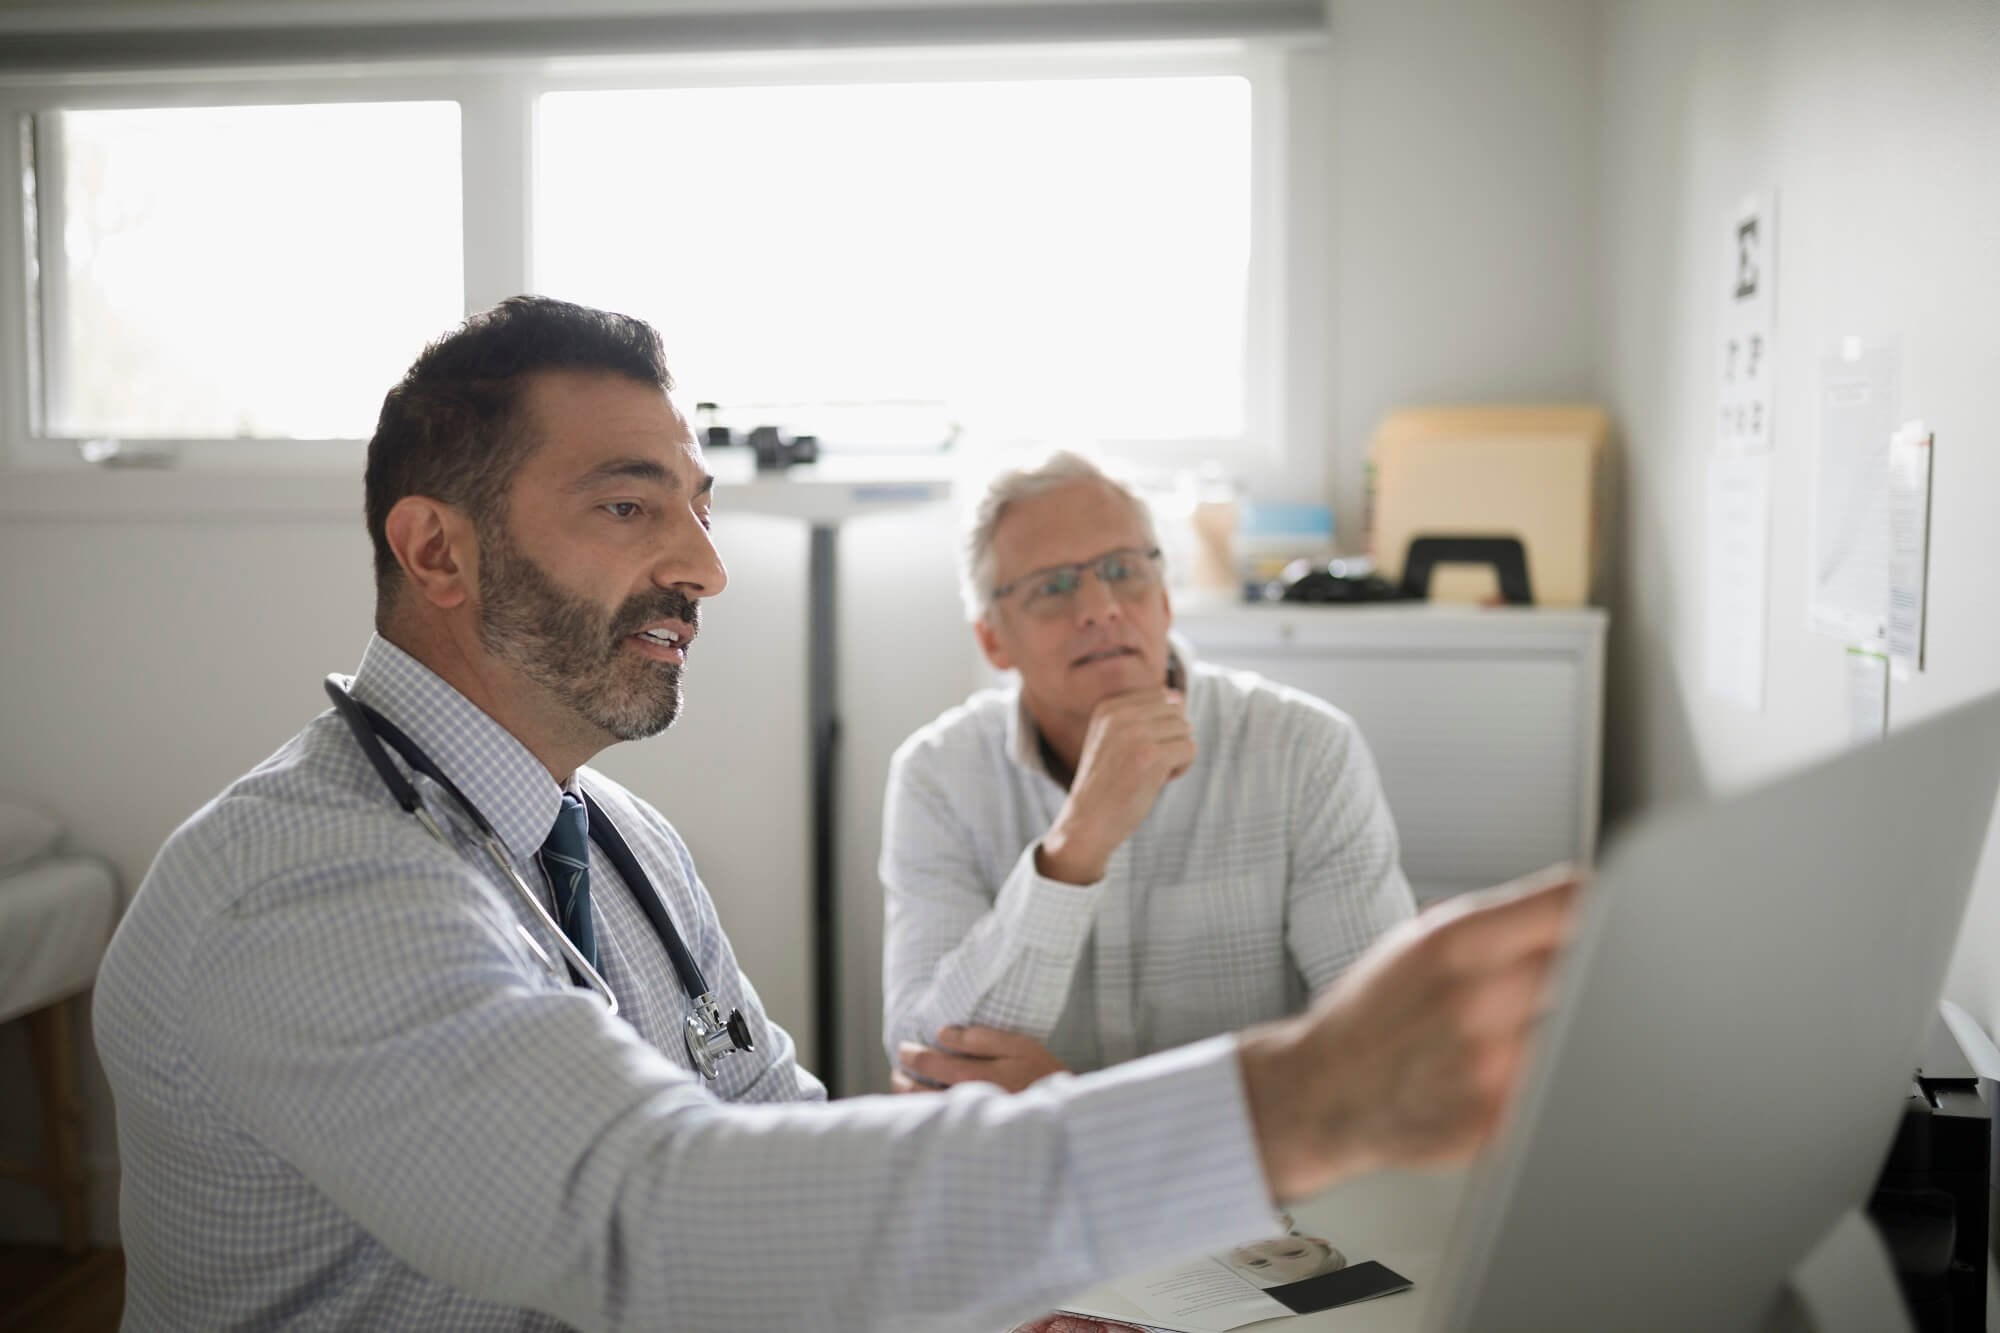 A lack of research focusing primarily on older patients with Hodgkin lymphoma has led to an unmet need for effective, less toxic treatment in this population.